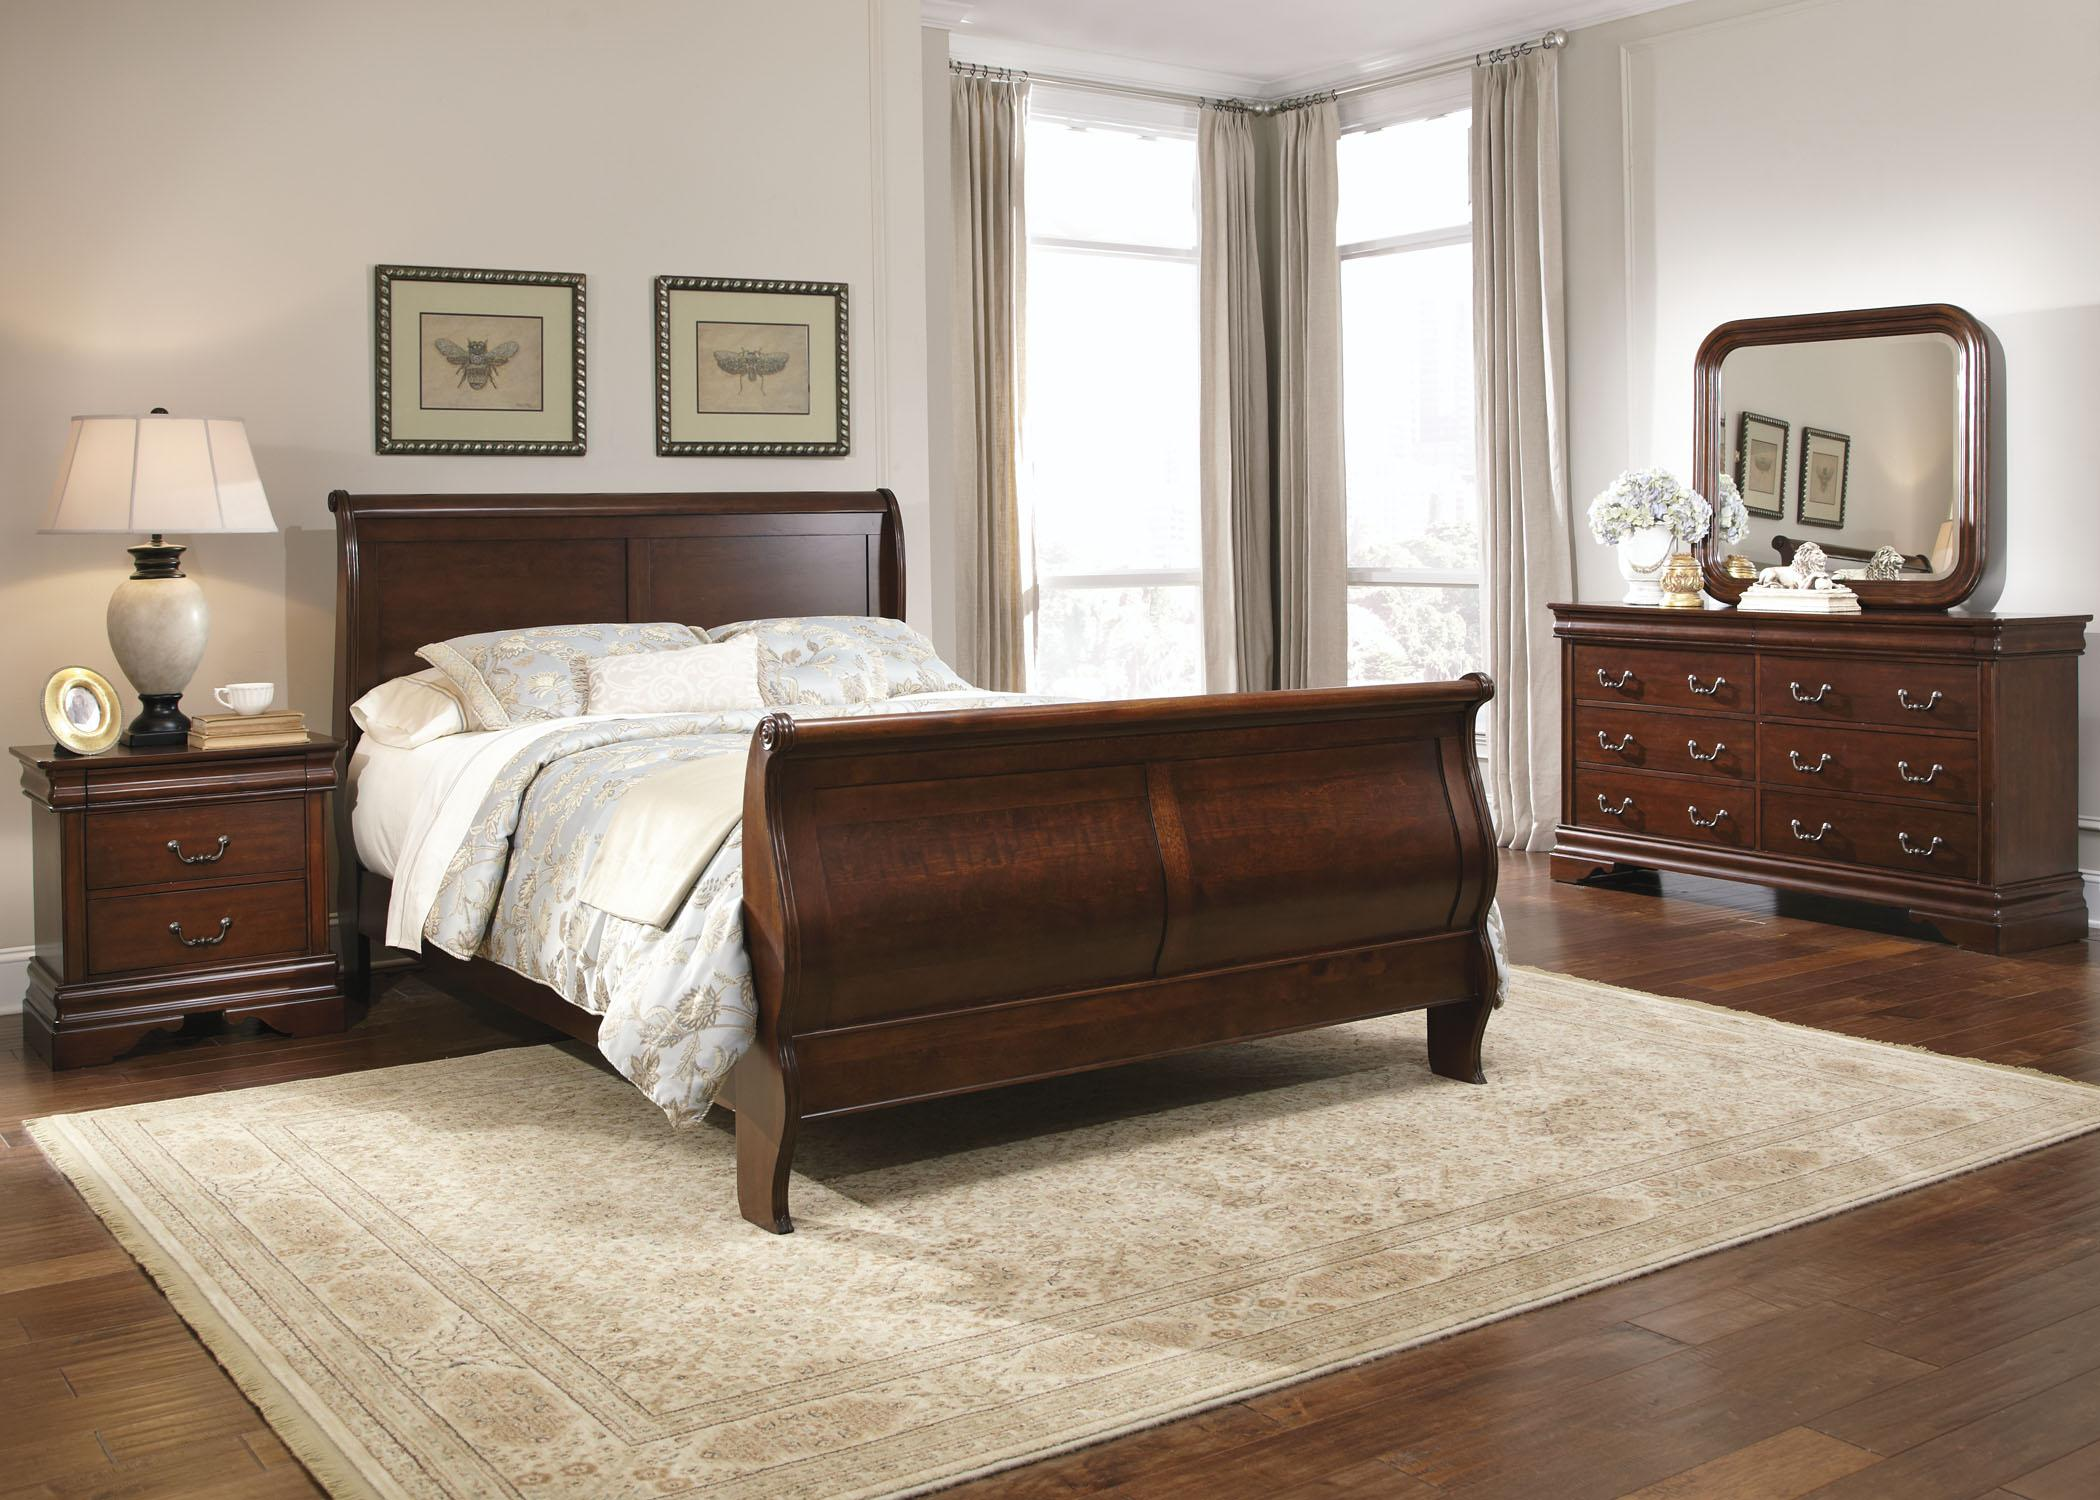 queen sleigh bed dresser mirror by liberty furniture wolf and gardiner wolf furniture. Black Bedroom Furniture Sets. Home Design Ideas